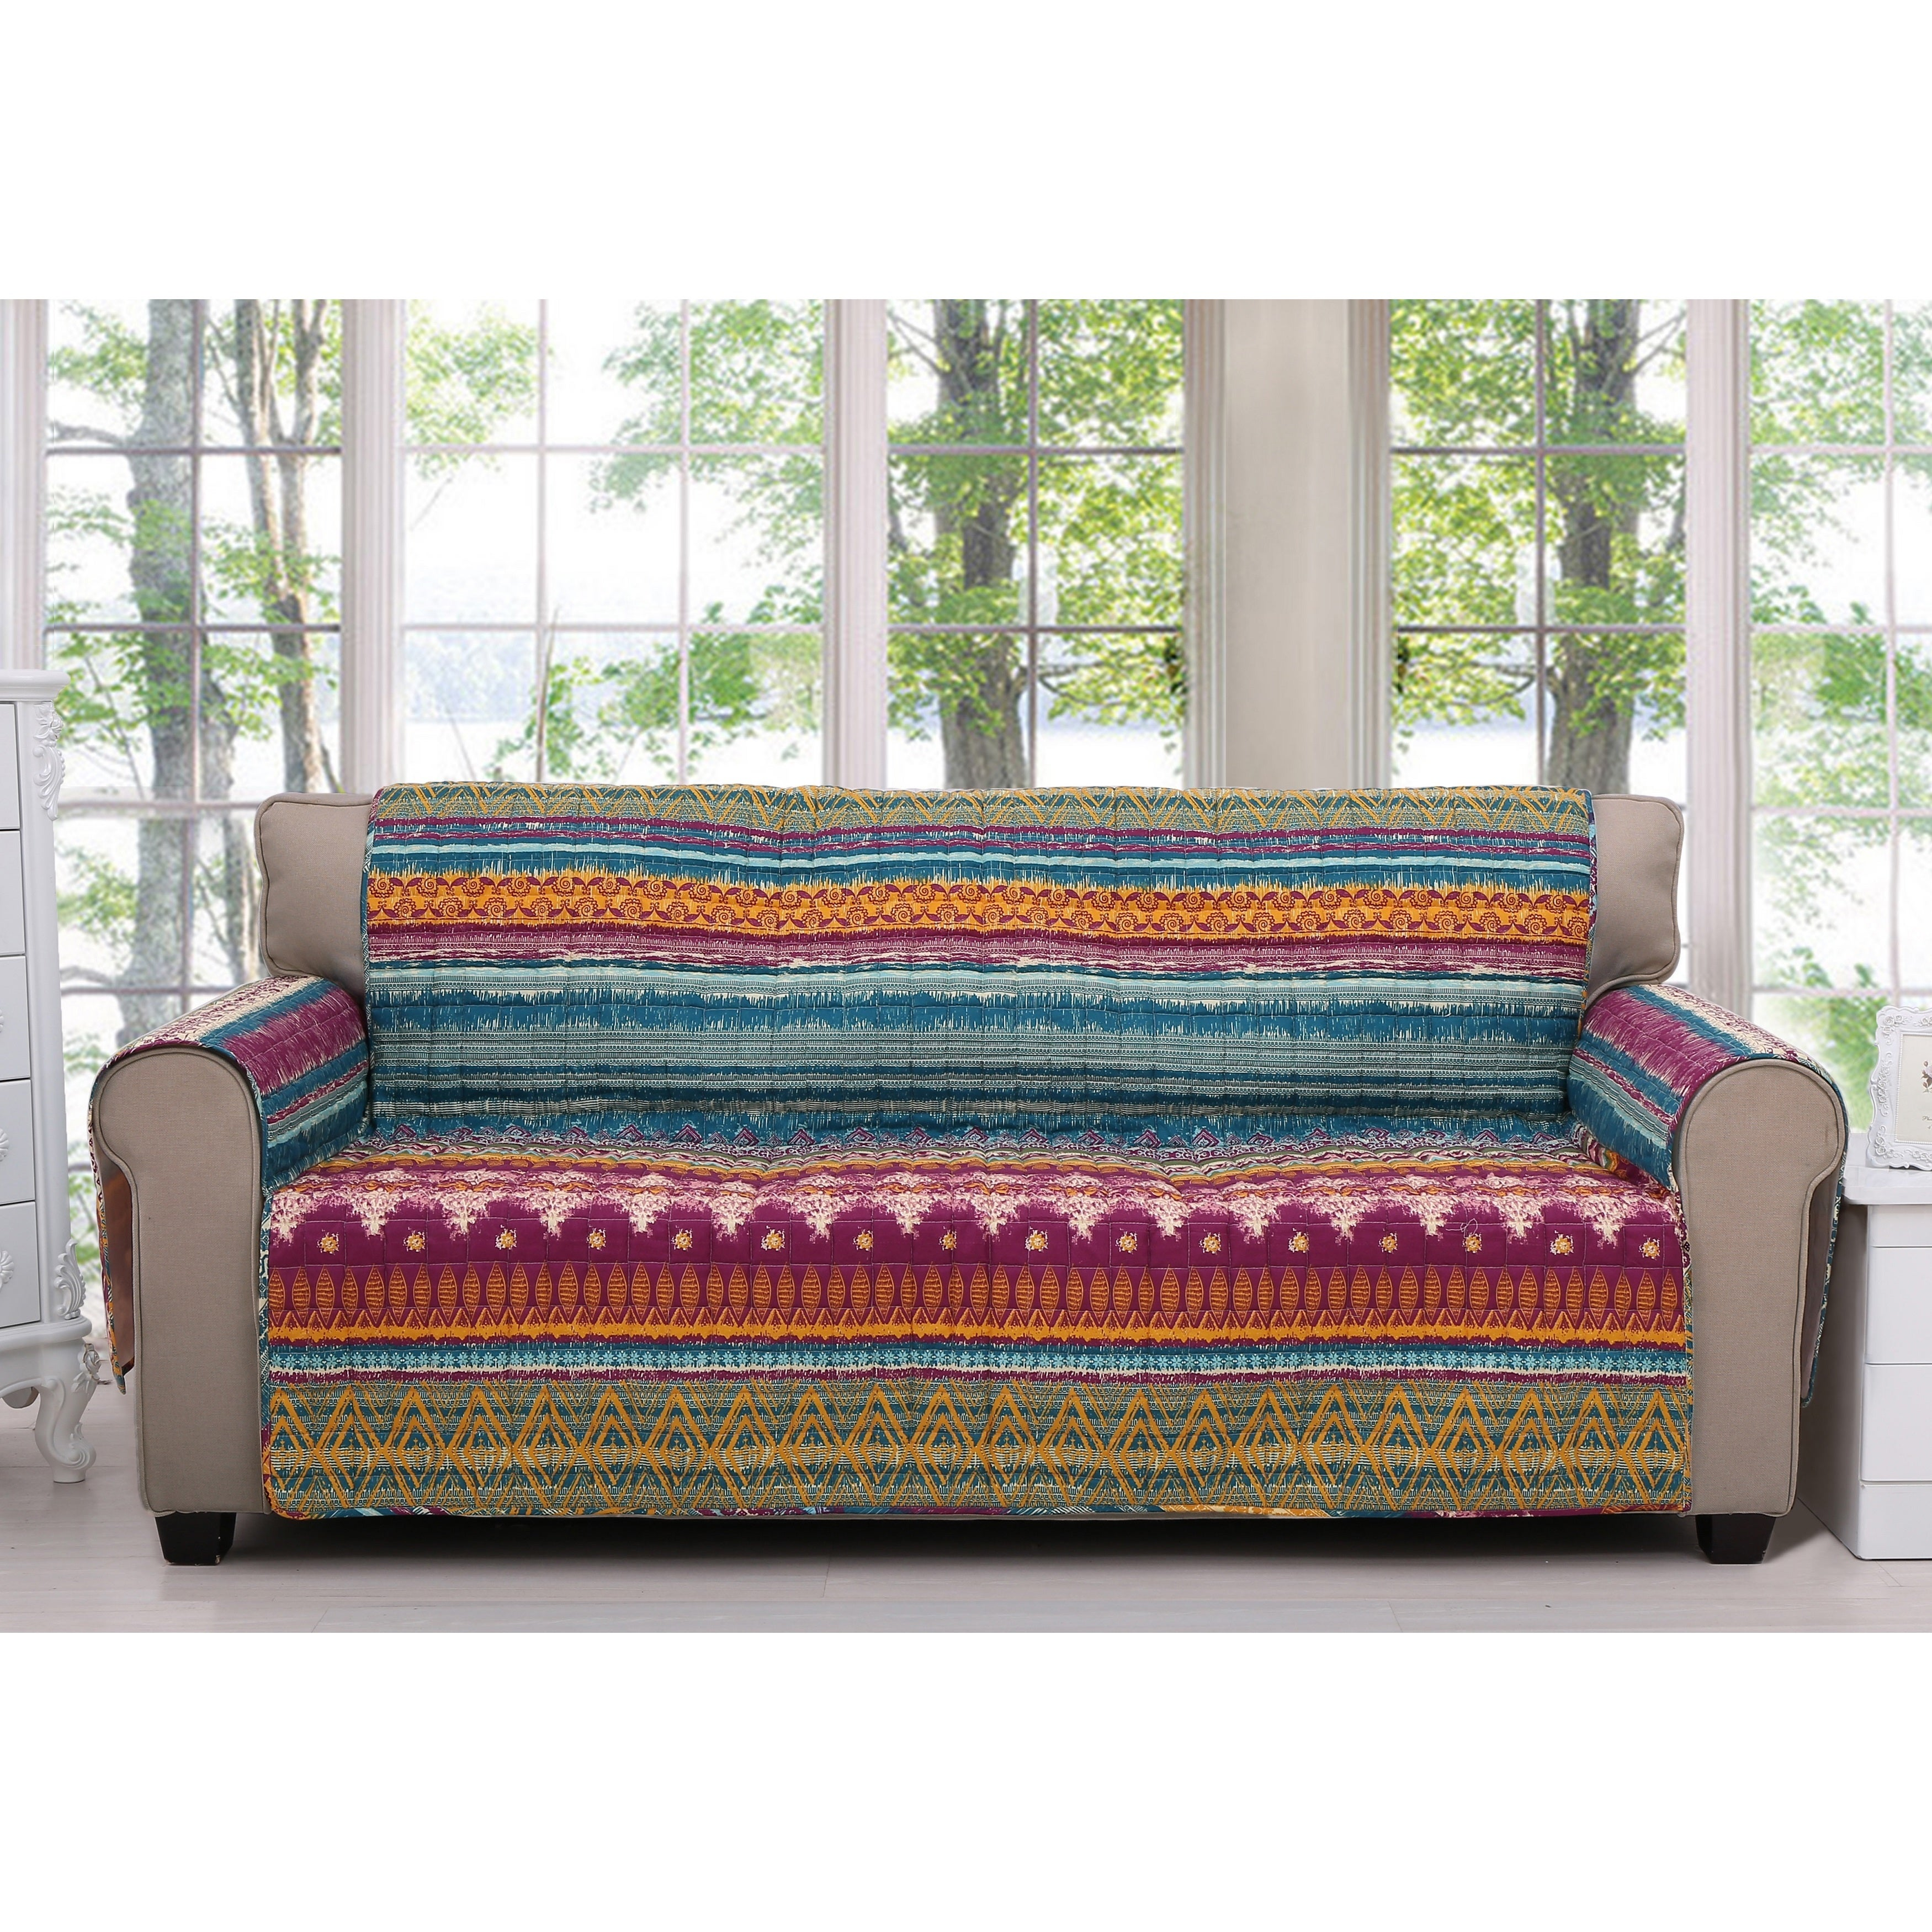 Shop Greenland Home Fashions Southwest Furniture Sofa Protector On